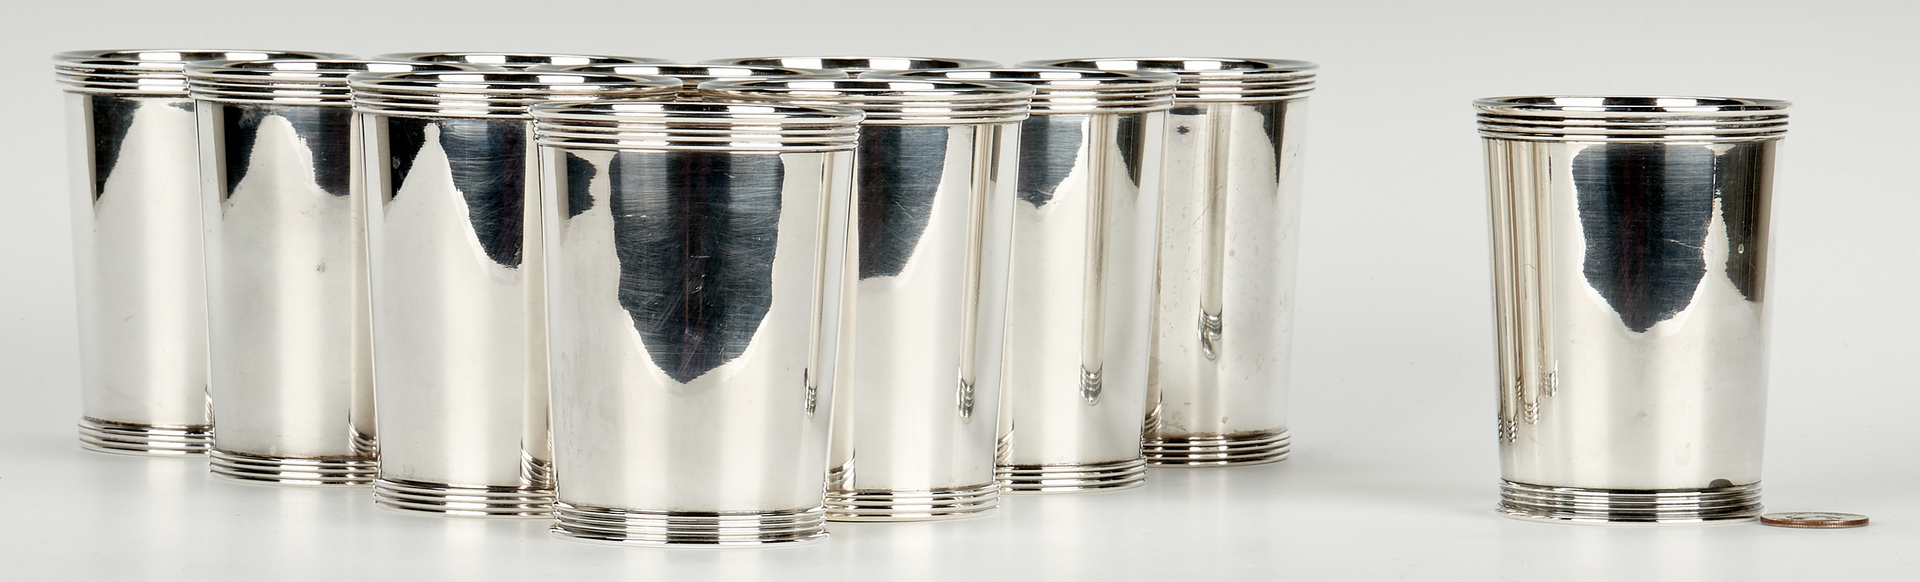 Lot 438: 11 Sterling Silver Julep Cups, incl. International, Manchester